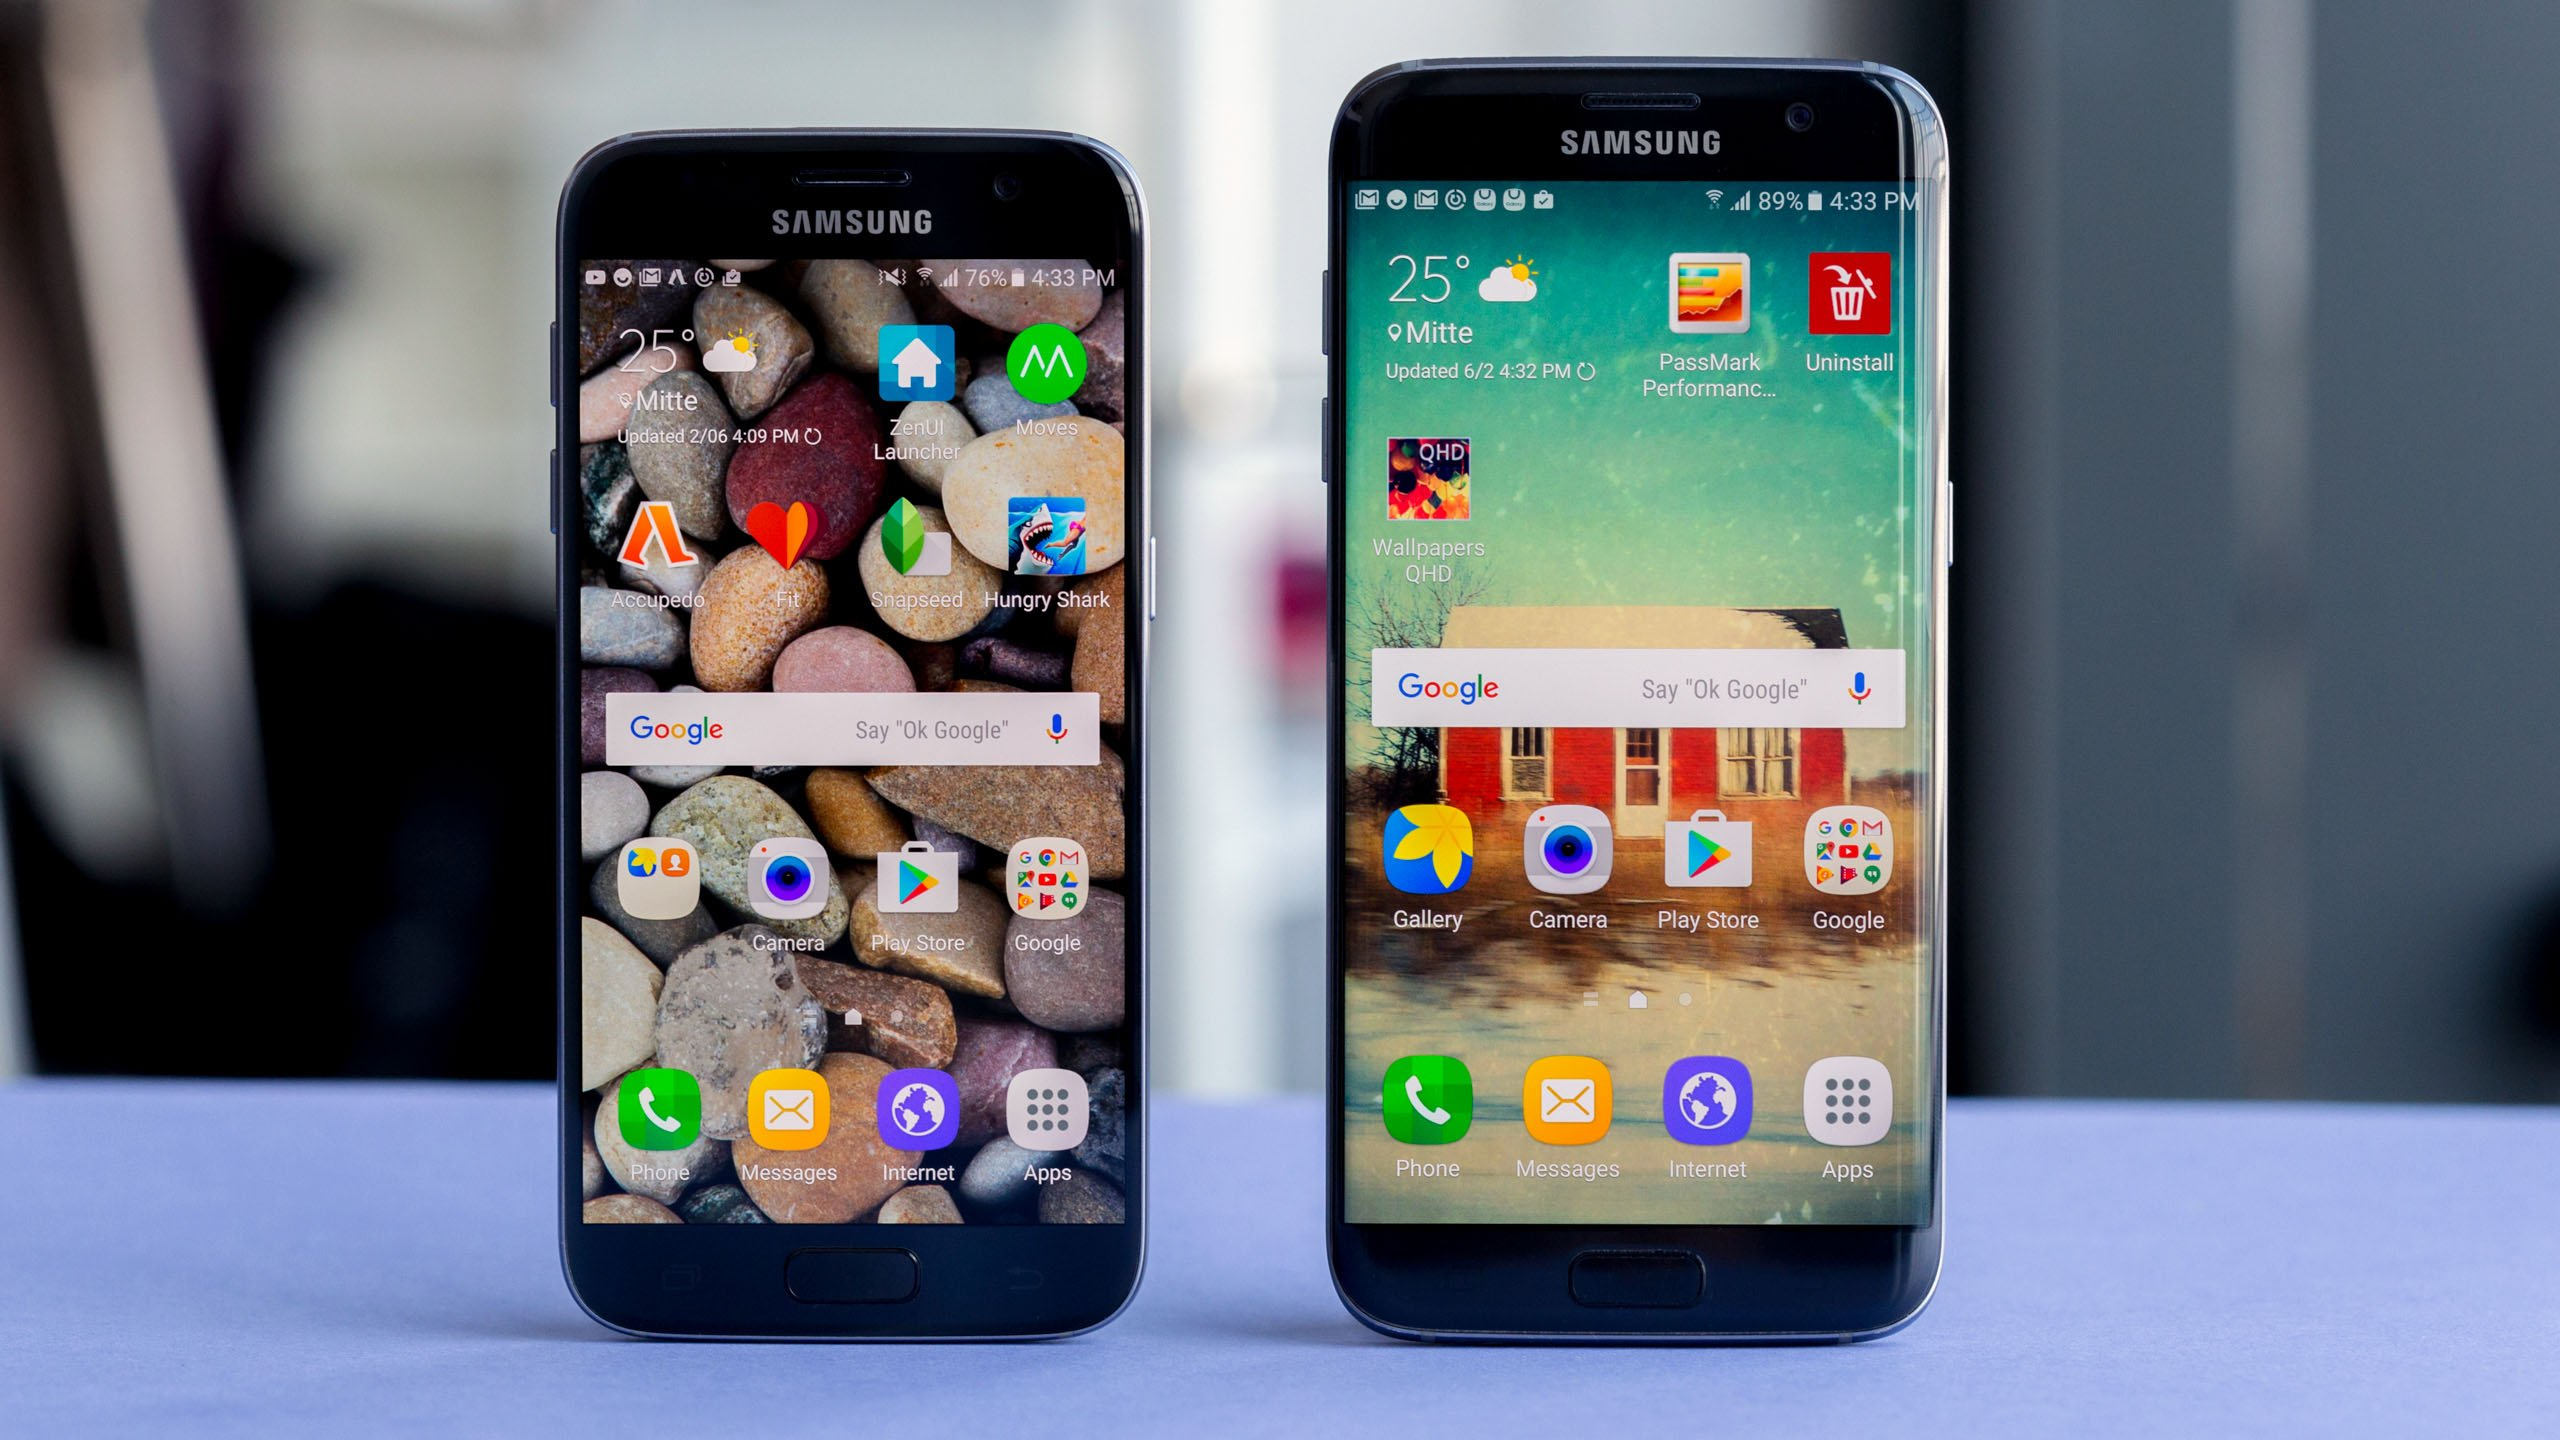 Galaxy S7 Edge Receive Android Oreo In The UK